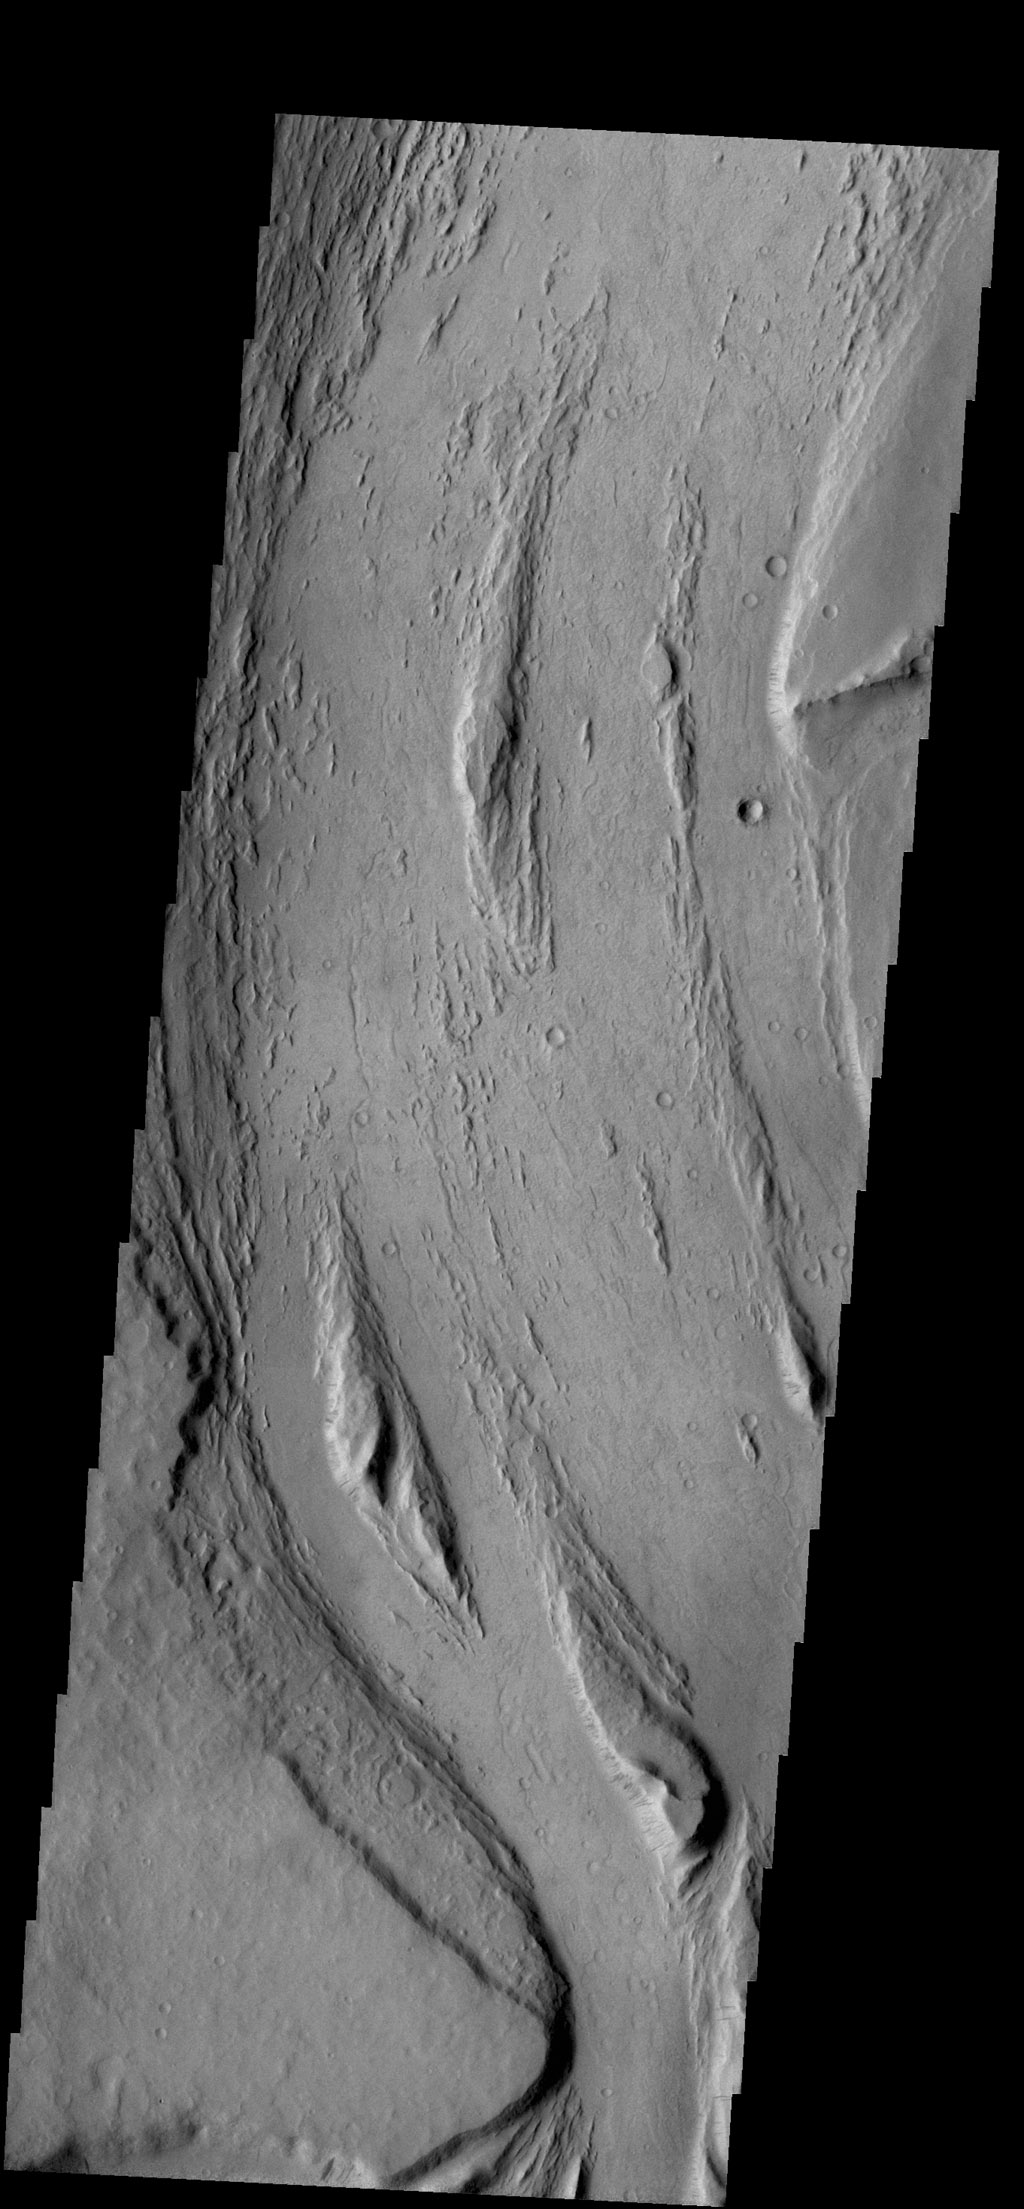 This VIS image captured by NASA's 2001 Mars Odyssey spacecraft shows streamlined islands are located in the channel of Mangala Valles, a portion of which is shown in the image.